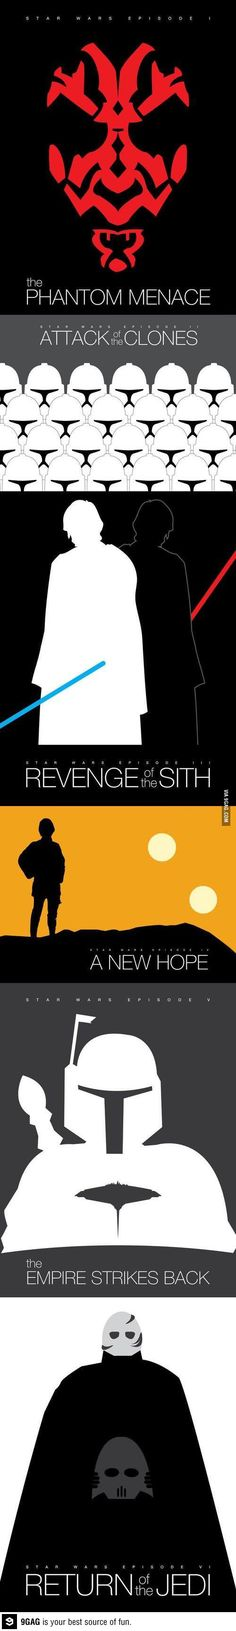 If they ever put the star wars movies back in theaters. These are the posters they need to use.